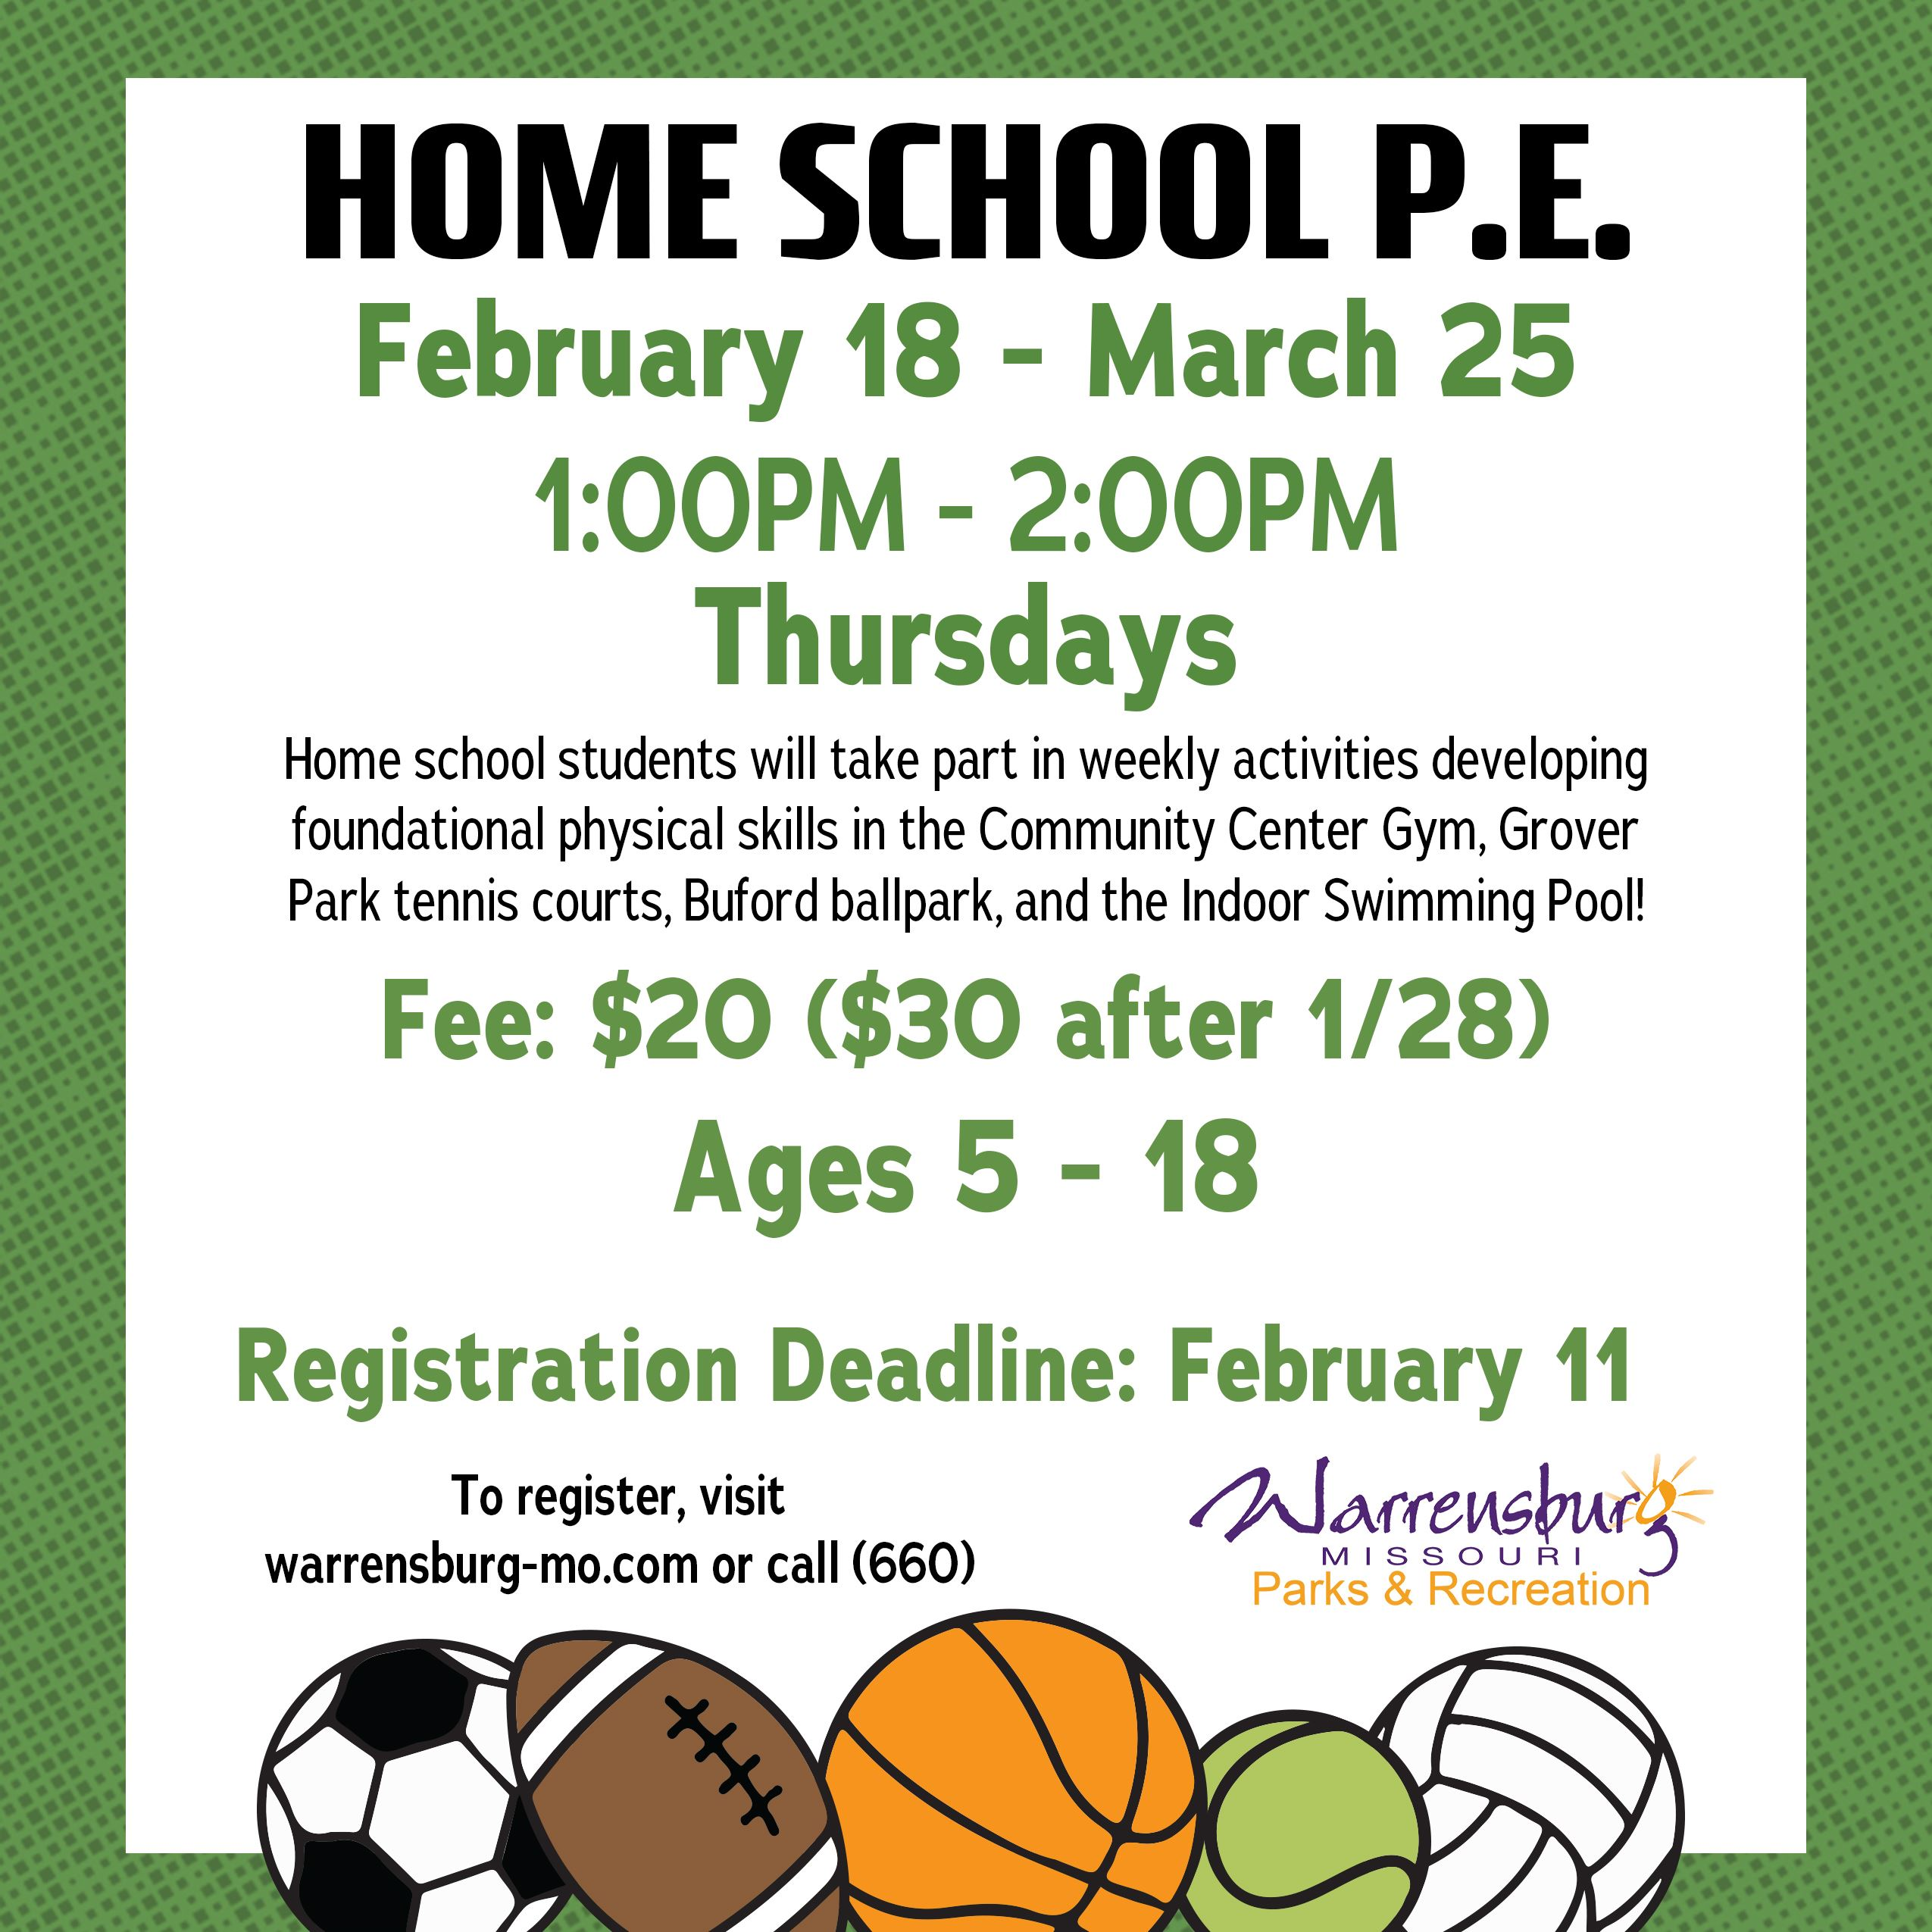 HomeSchool PE Web Spring 2021 Session 2